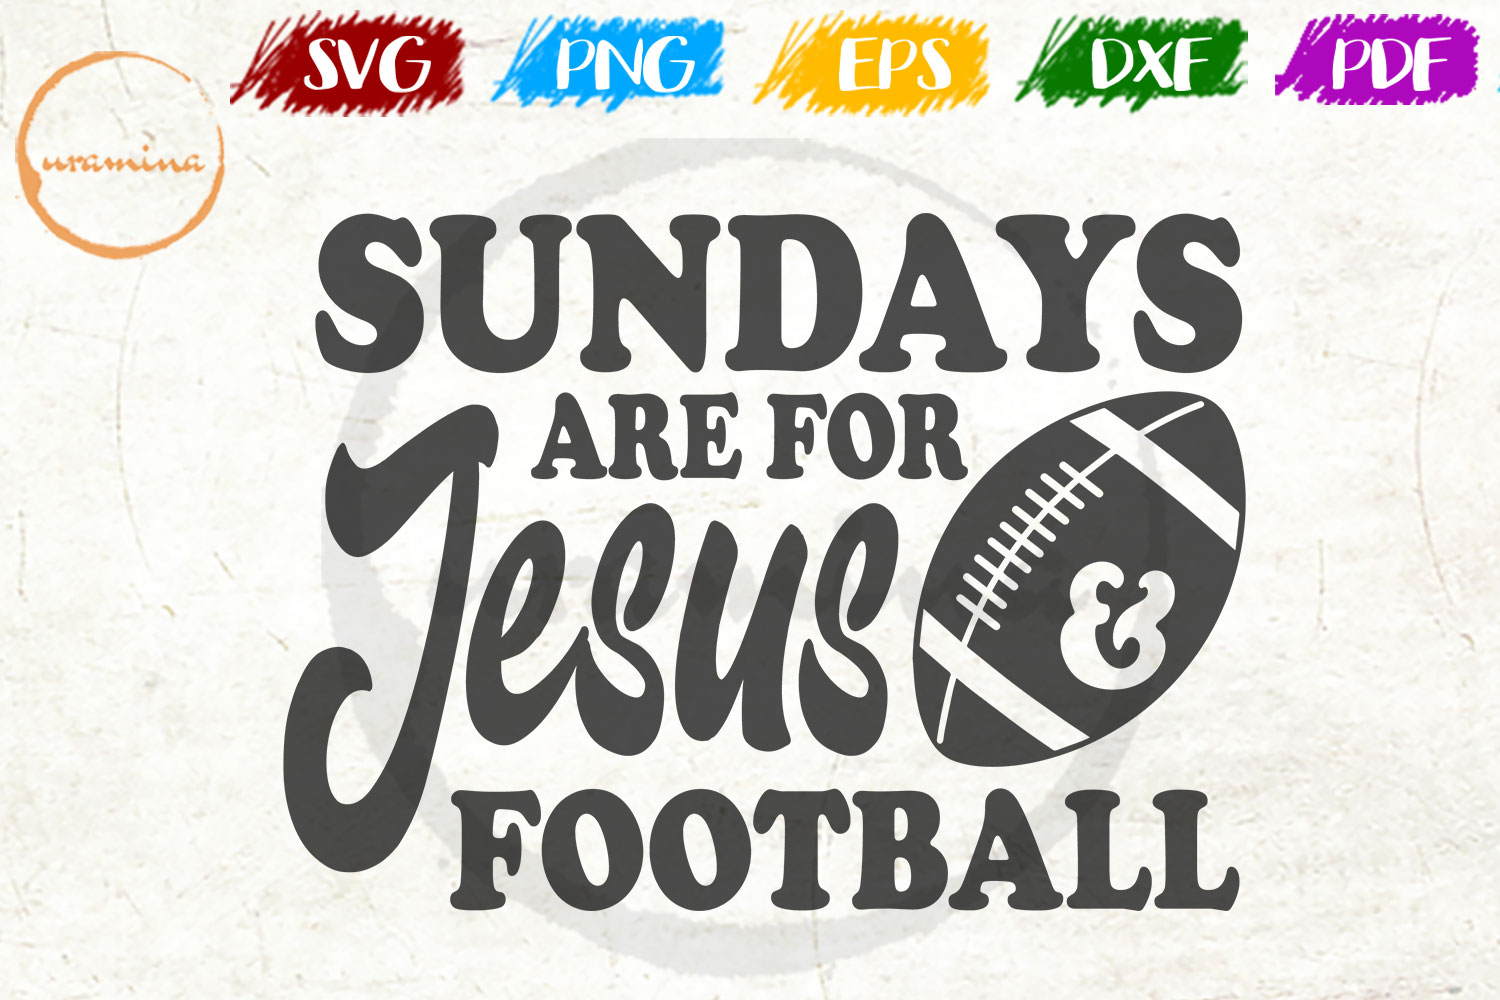 Download Free Sundays Are For Jesus And Football Graphic By Uramina Creative for Cricut Explore, Silhouette and other cutting machines.